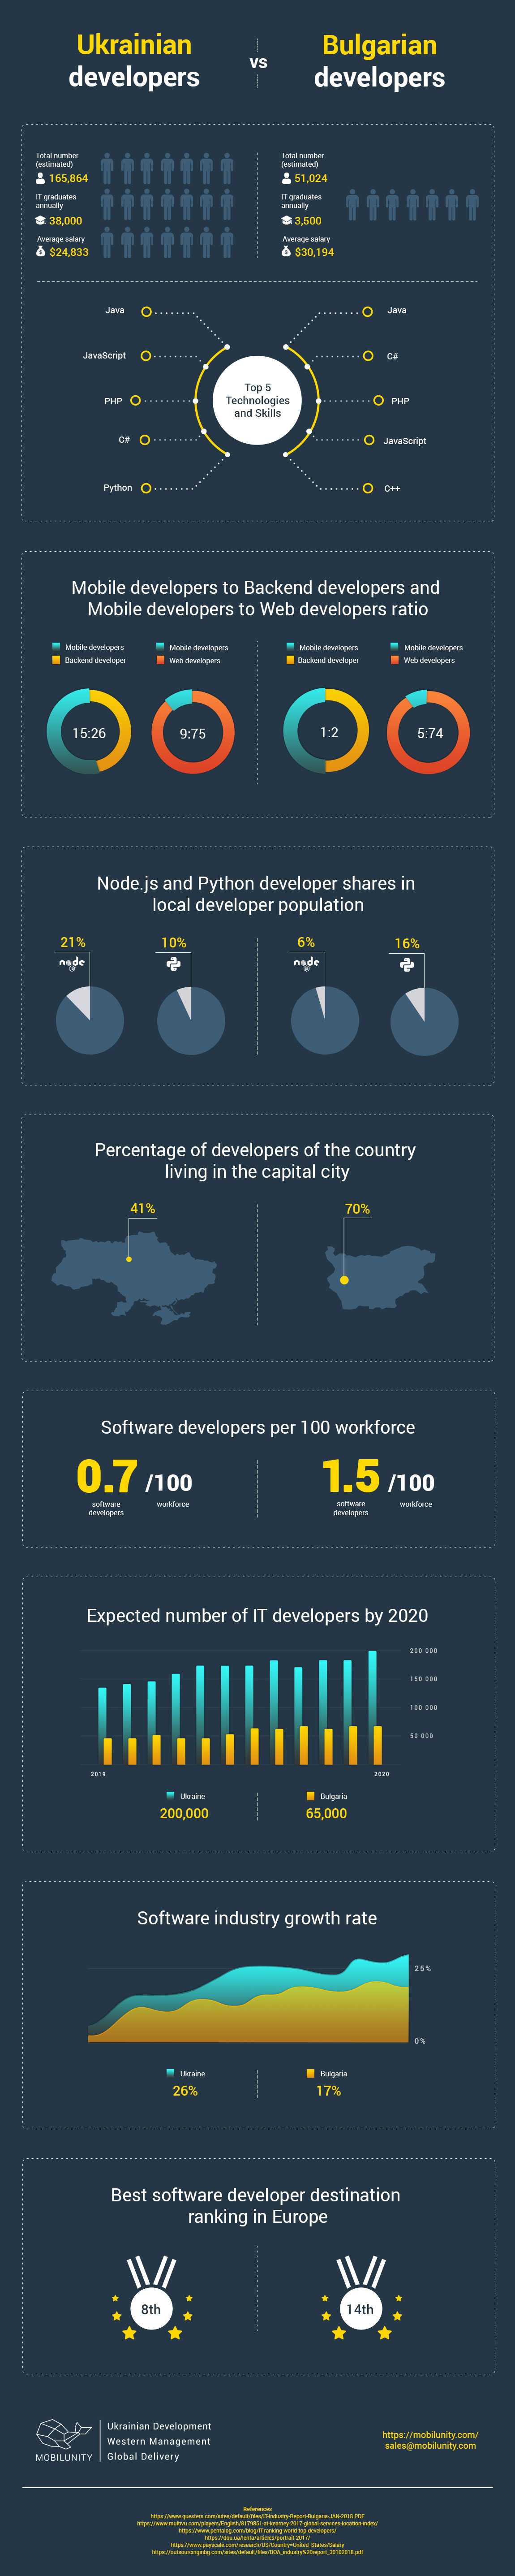 infographics-ukrainian-vs-bulgarian-developers-infographic-plaza